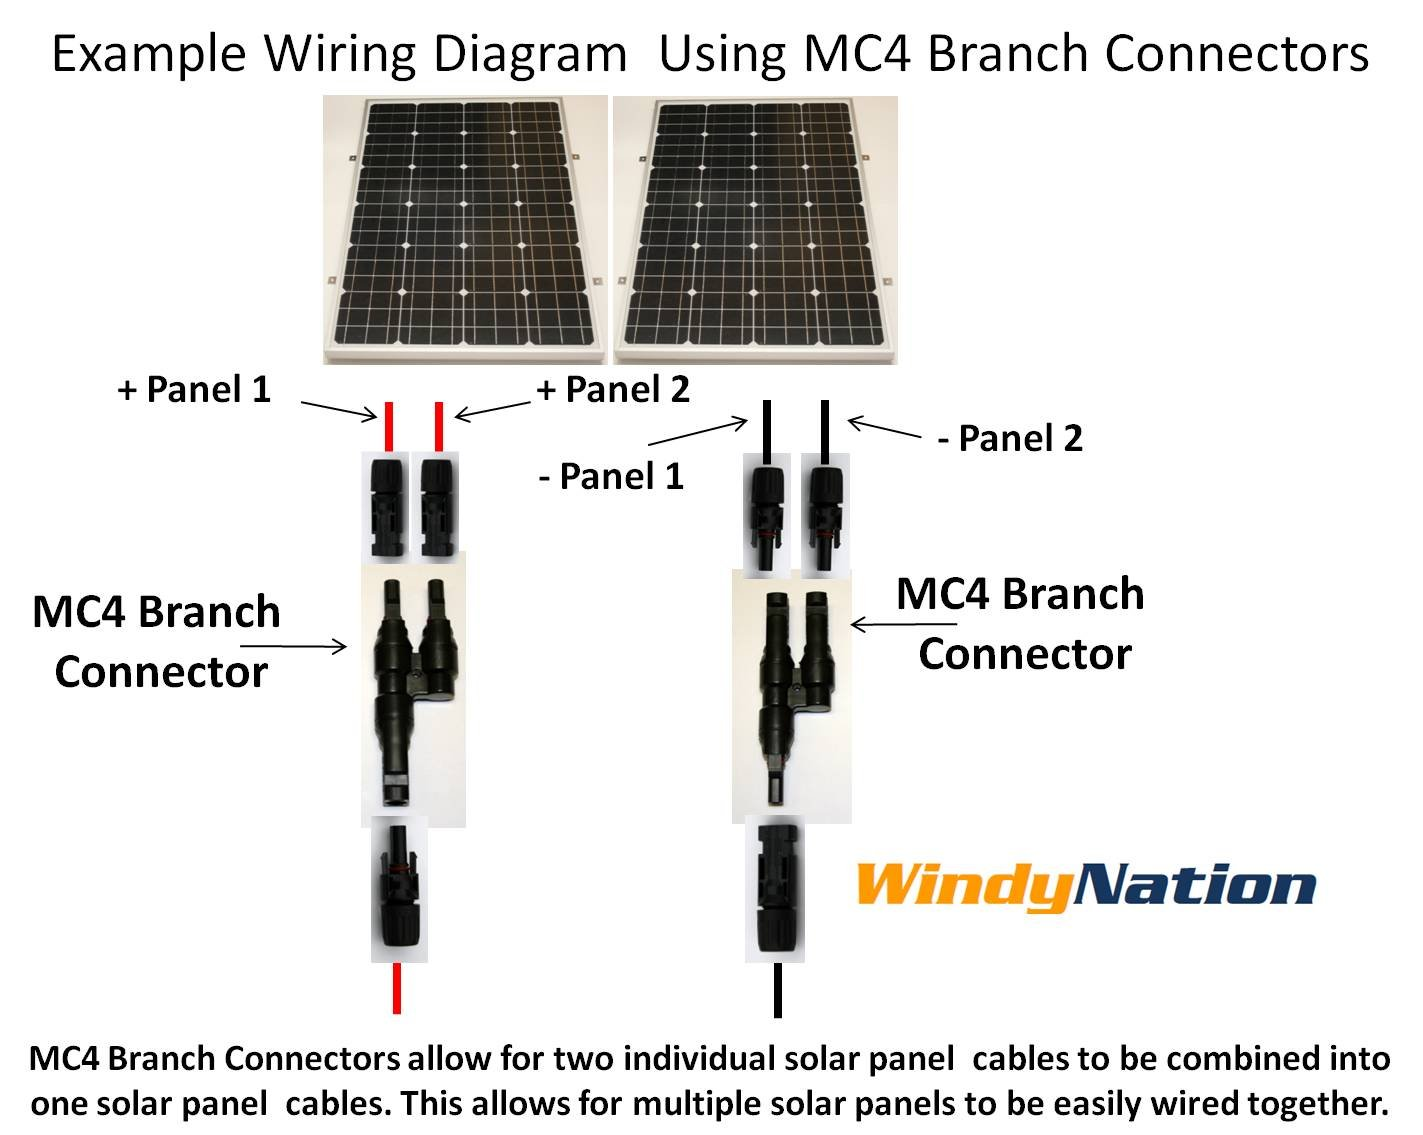 Ten Pairs Solar Panel MC4 T Branch Connectors Cable Splitter Coupler by WindyNation